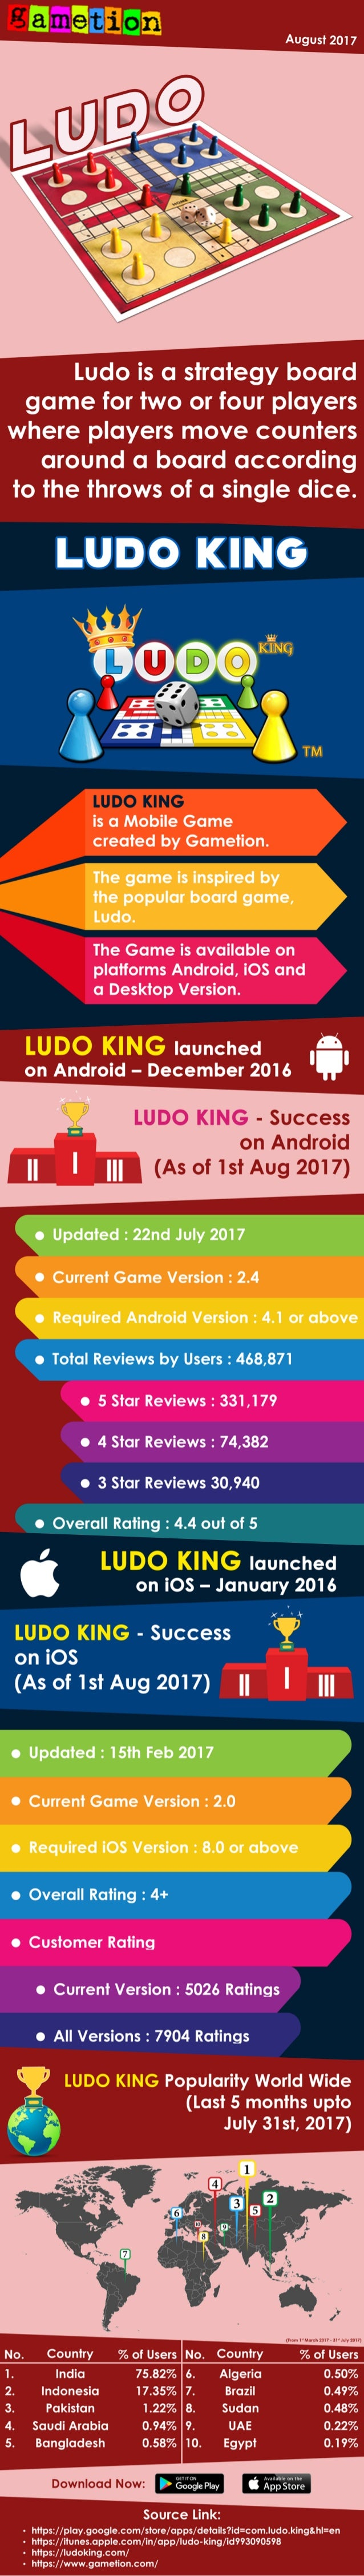 An Infographic on Ludo King